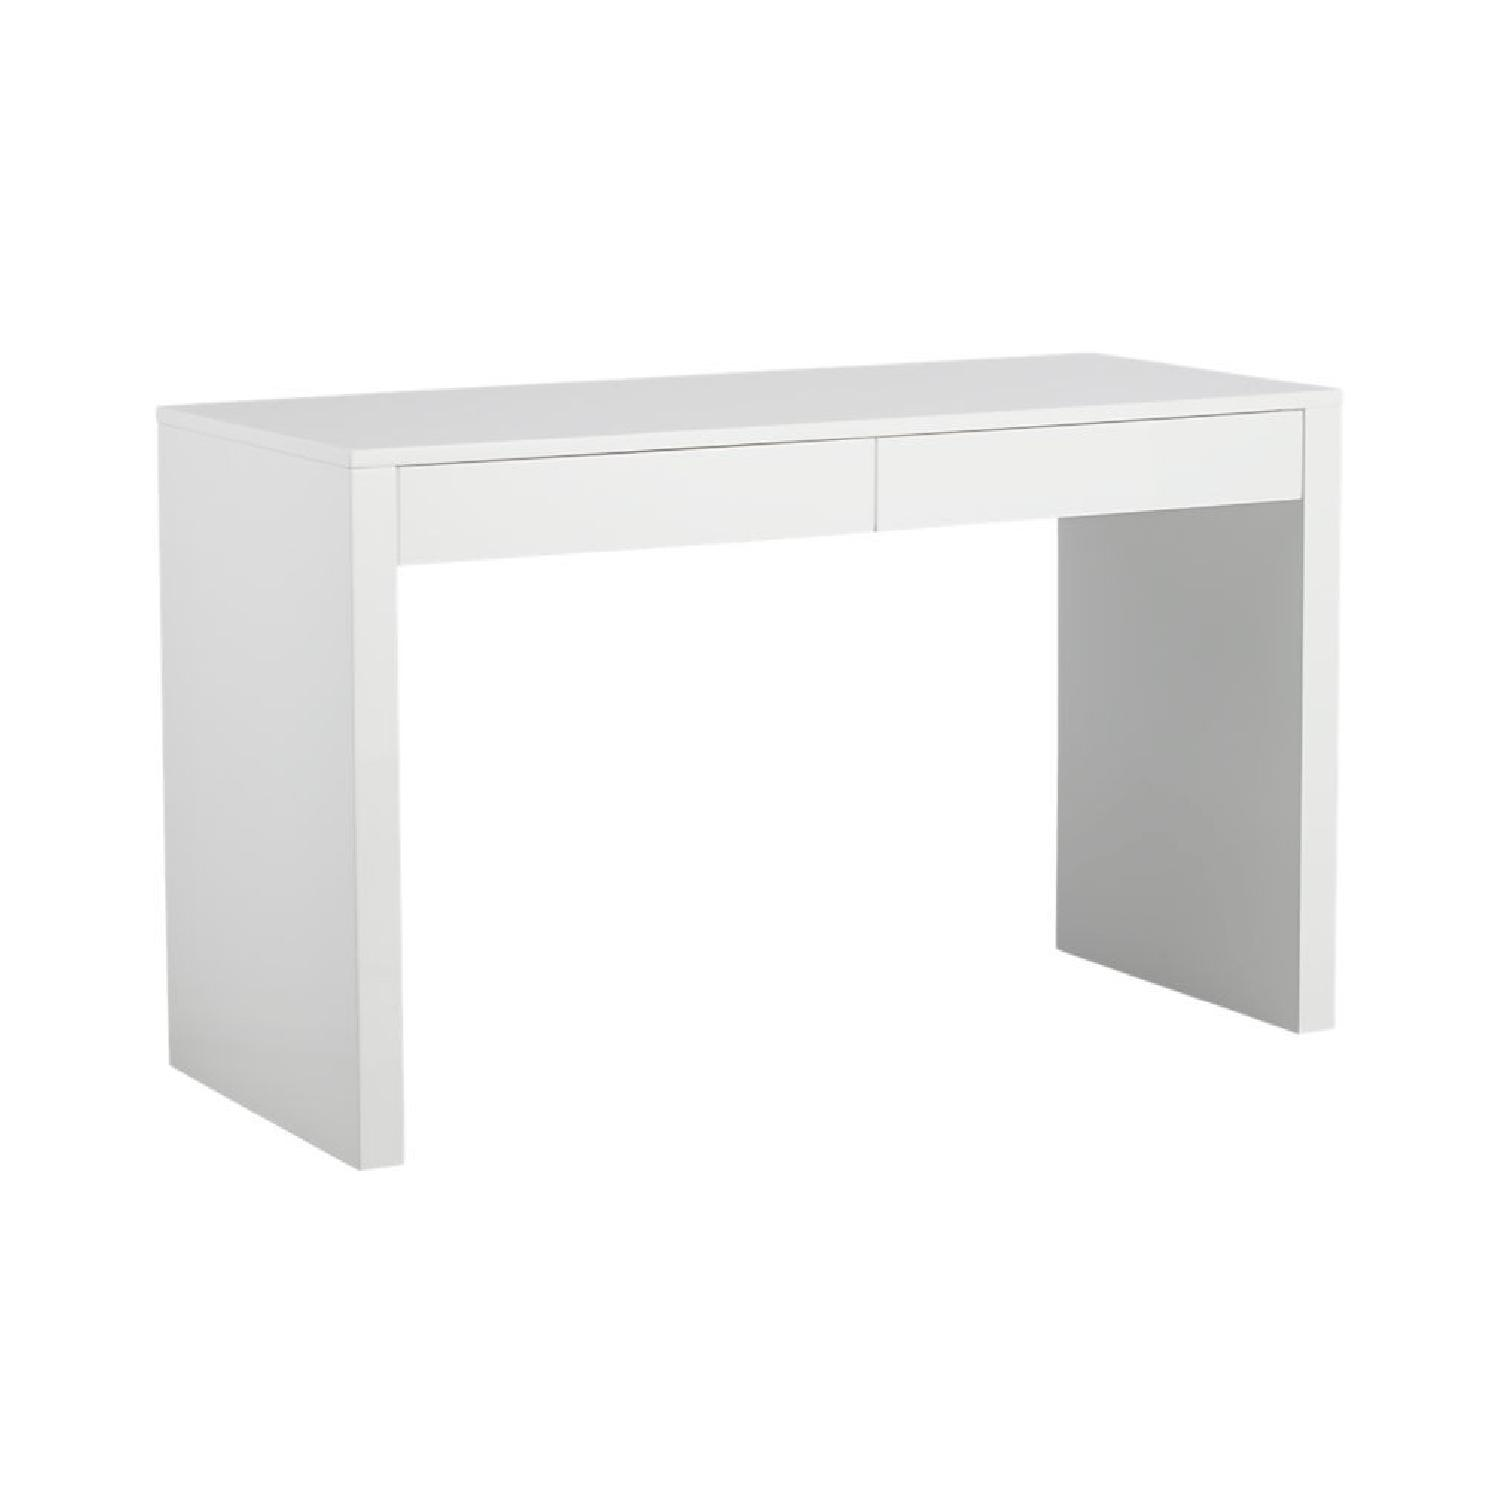 West Elm Parsons Desk White with Drawers